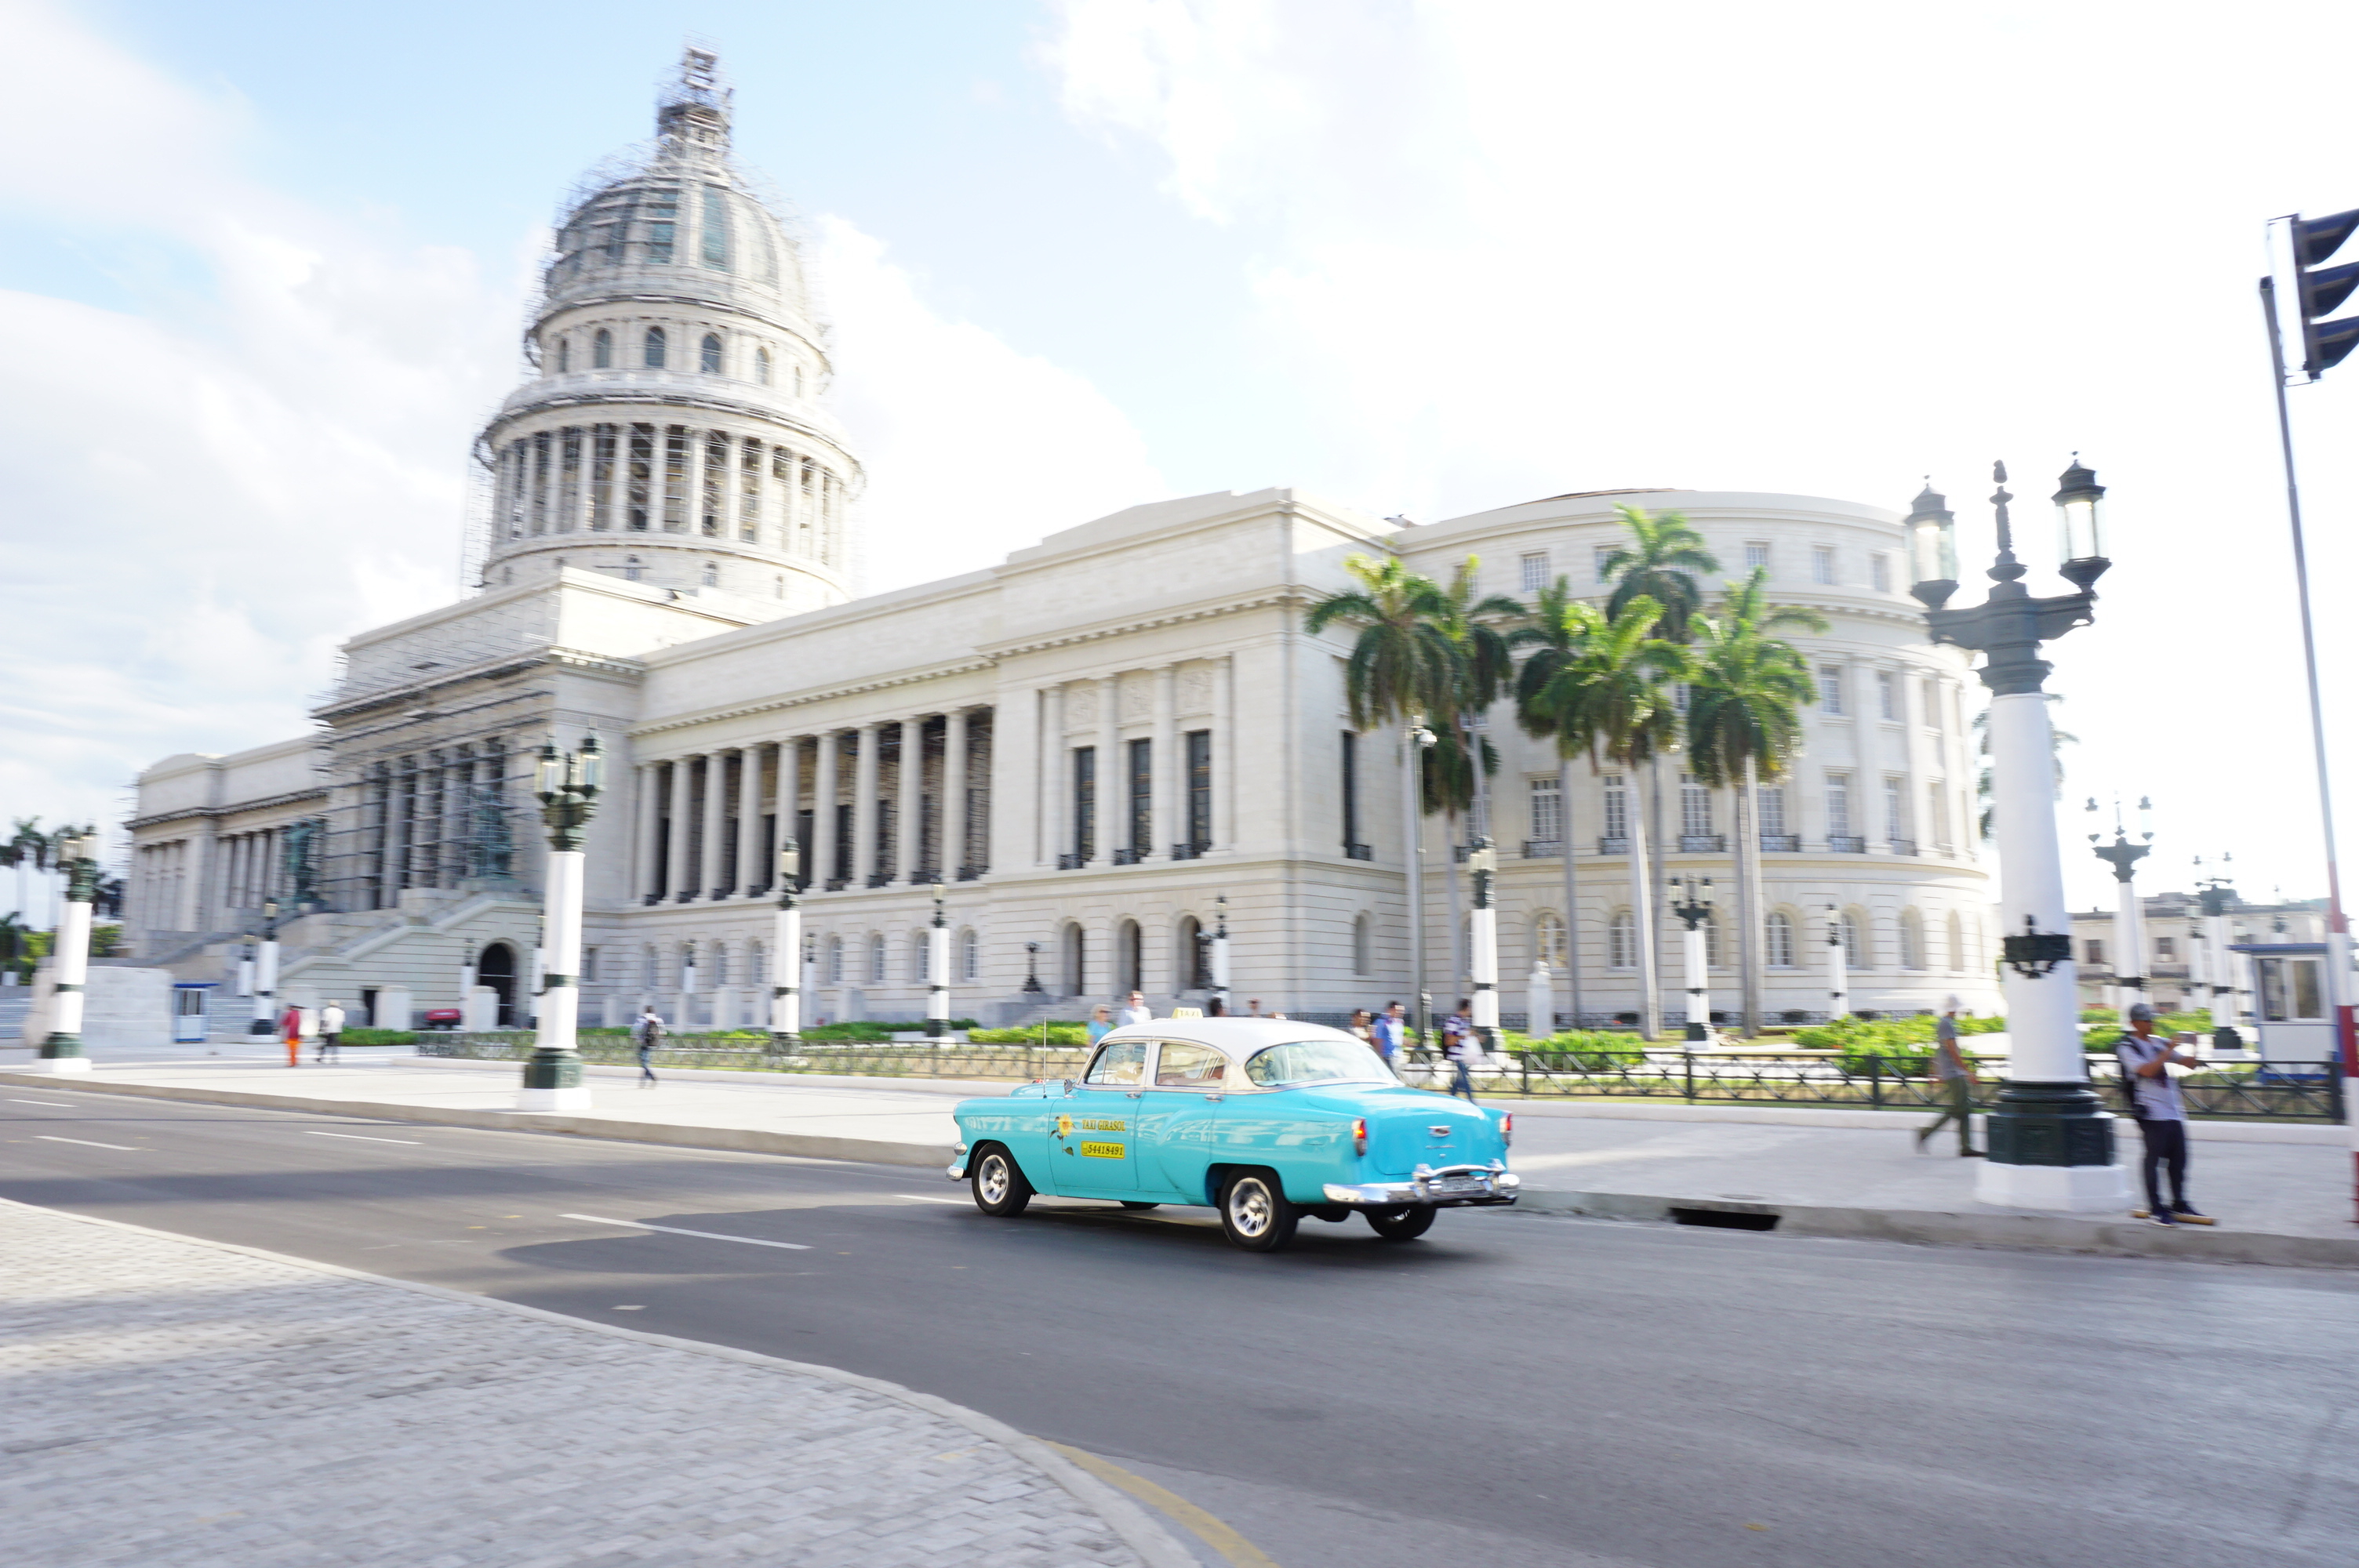 Top Budget Cuba Tours TourRadar - Cuba tours reviews